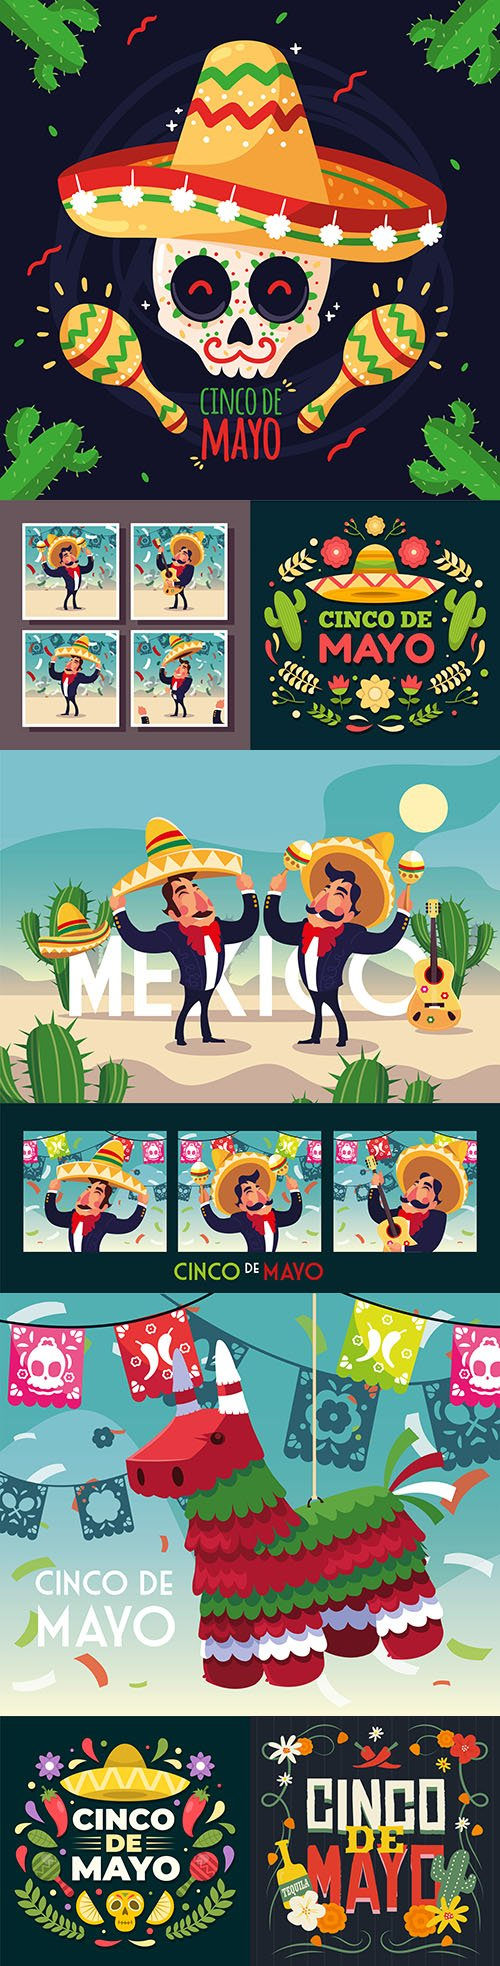 Synco de Mayo Mexican holiday premium illustration 4